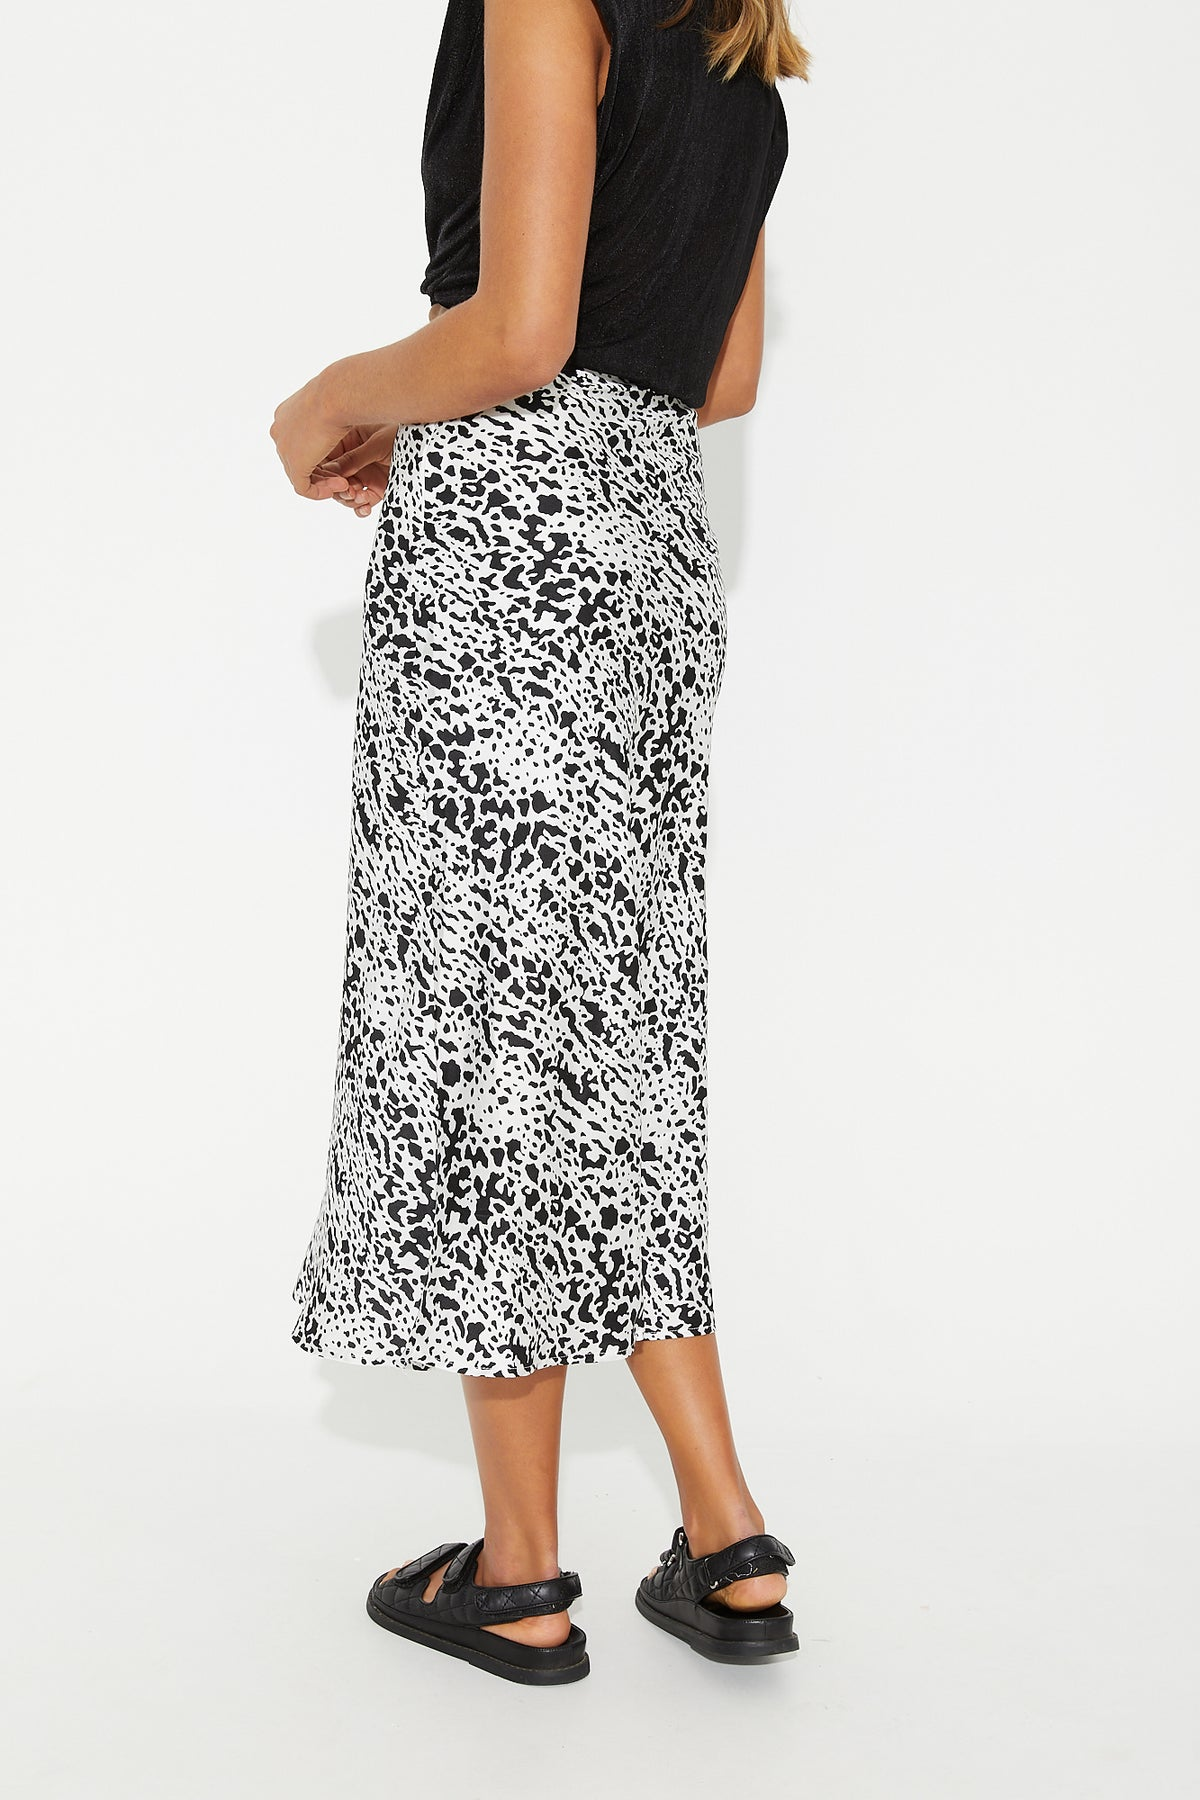 Alix Midi Skirt Black Print